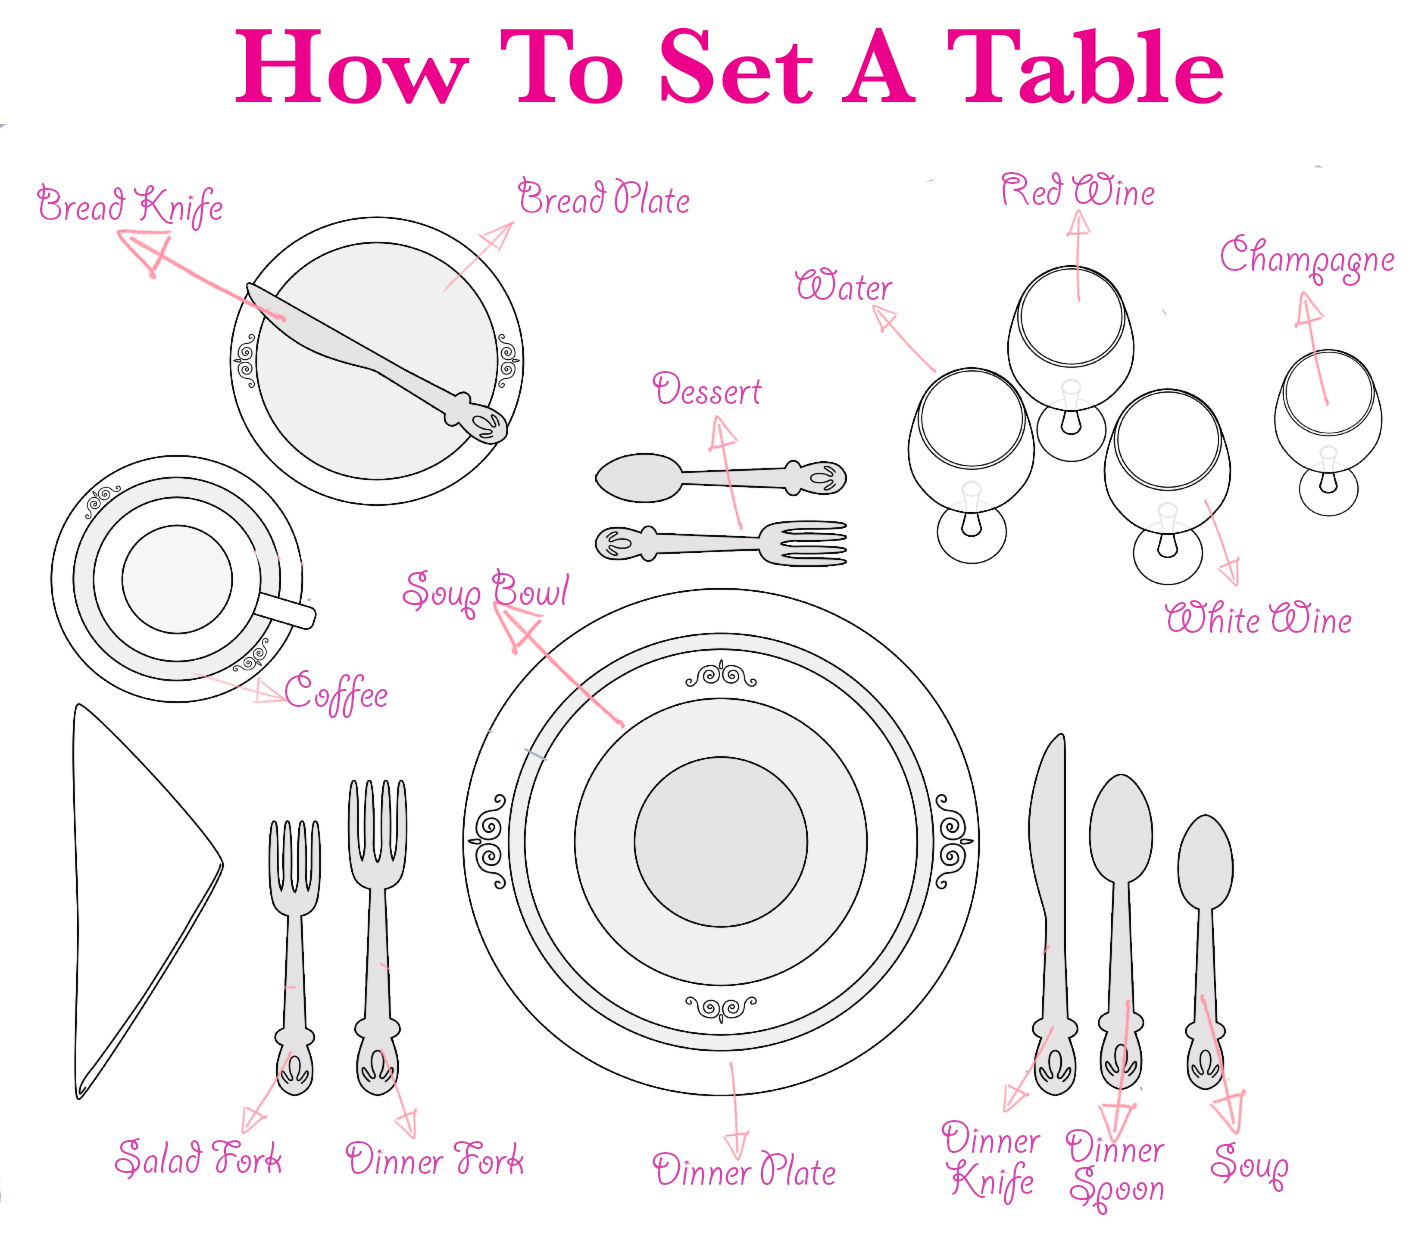 10 Gorgeous Table Setting Ideas How To Set Your Table: dinner table setting pictures